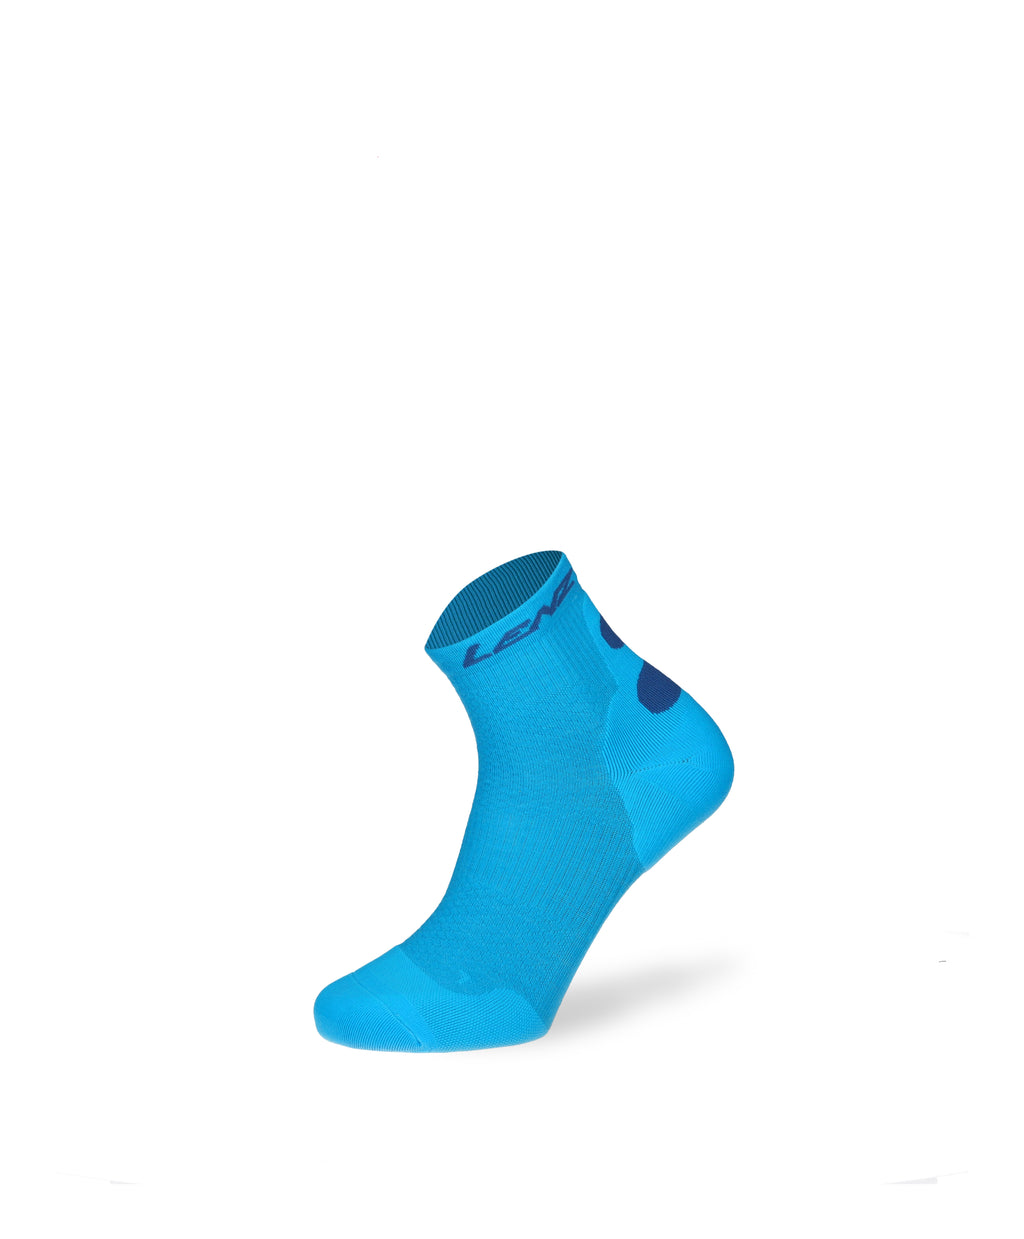 Compression socks 8.0 Low Merino - Lenz Products